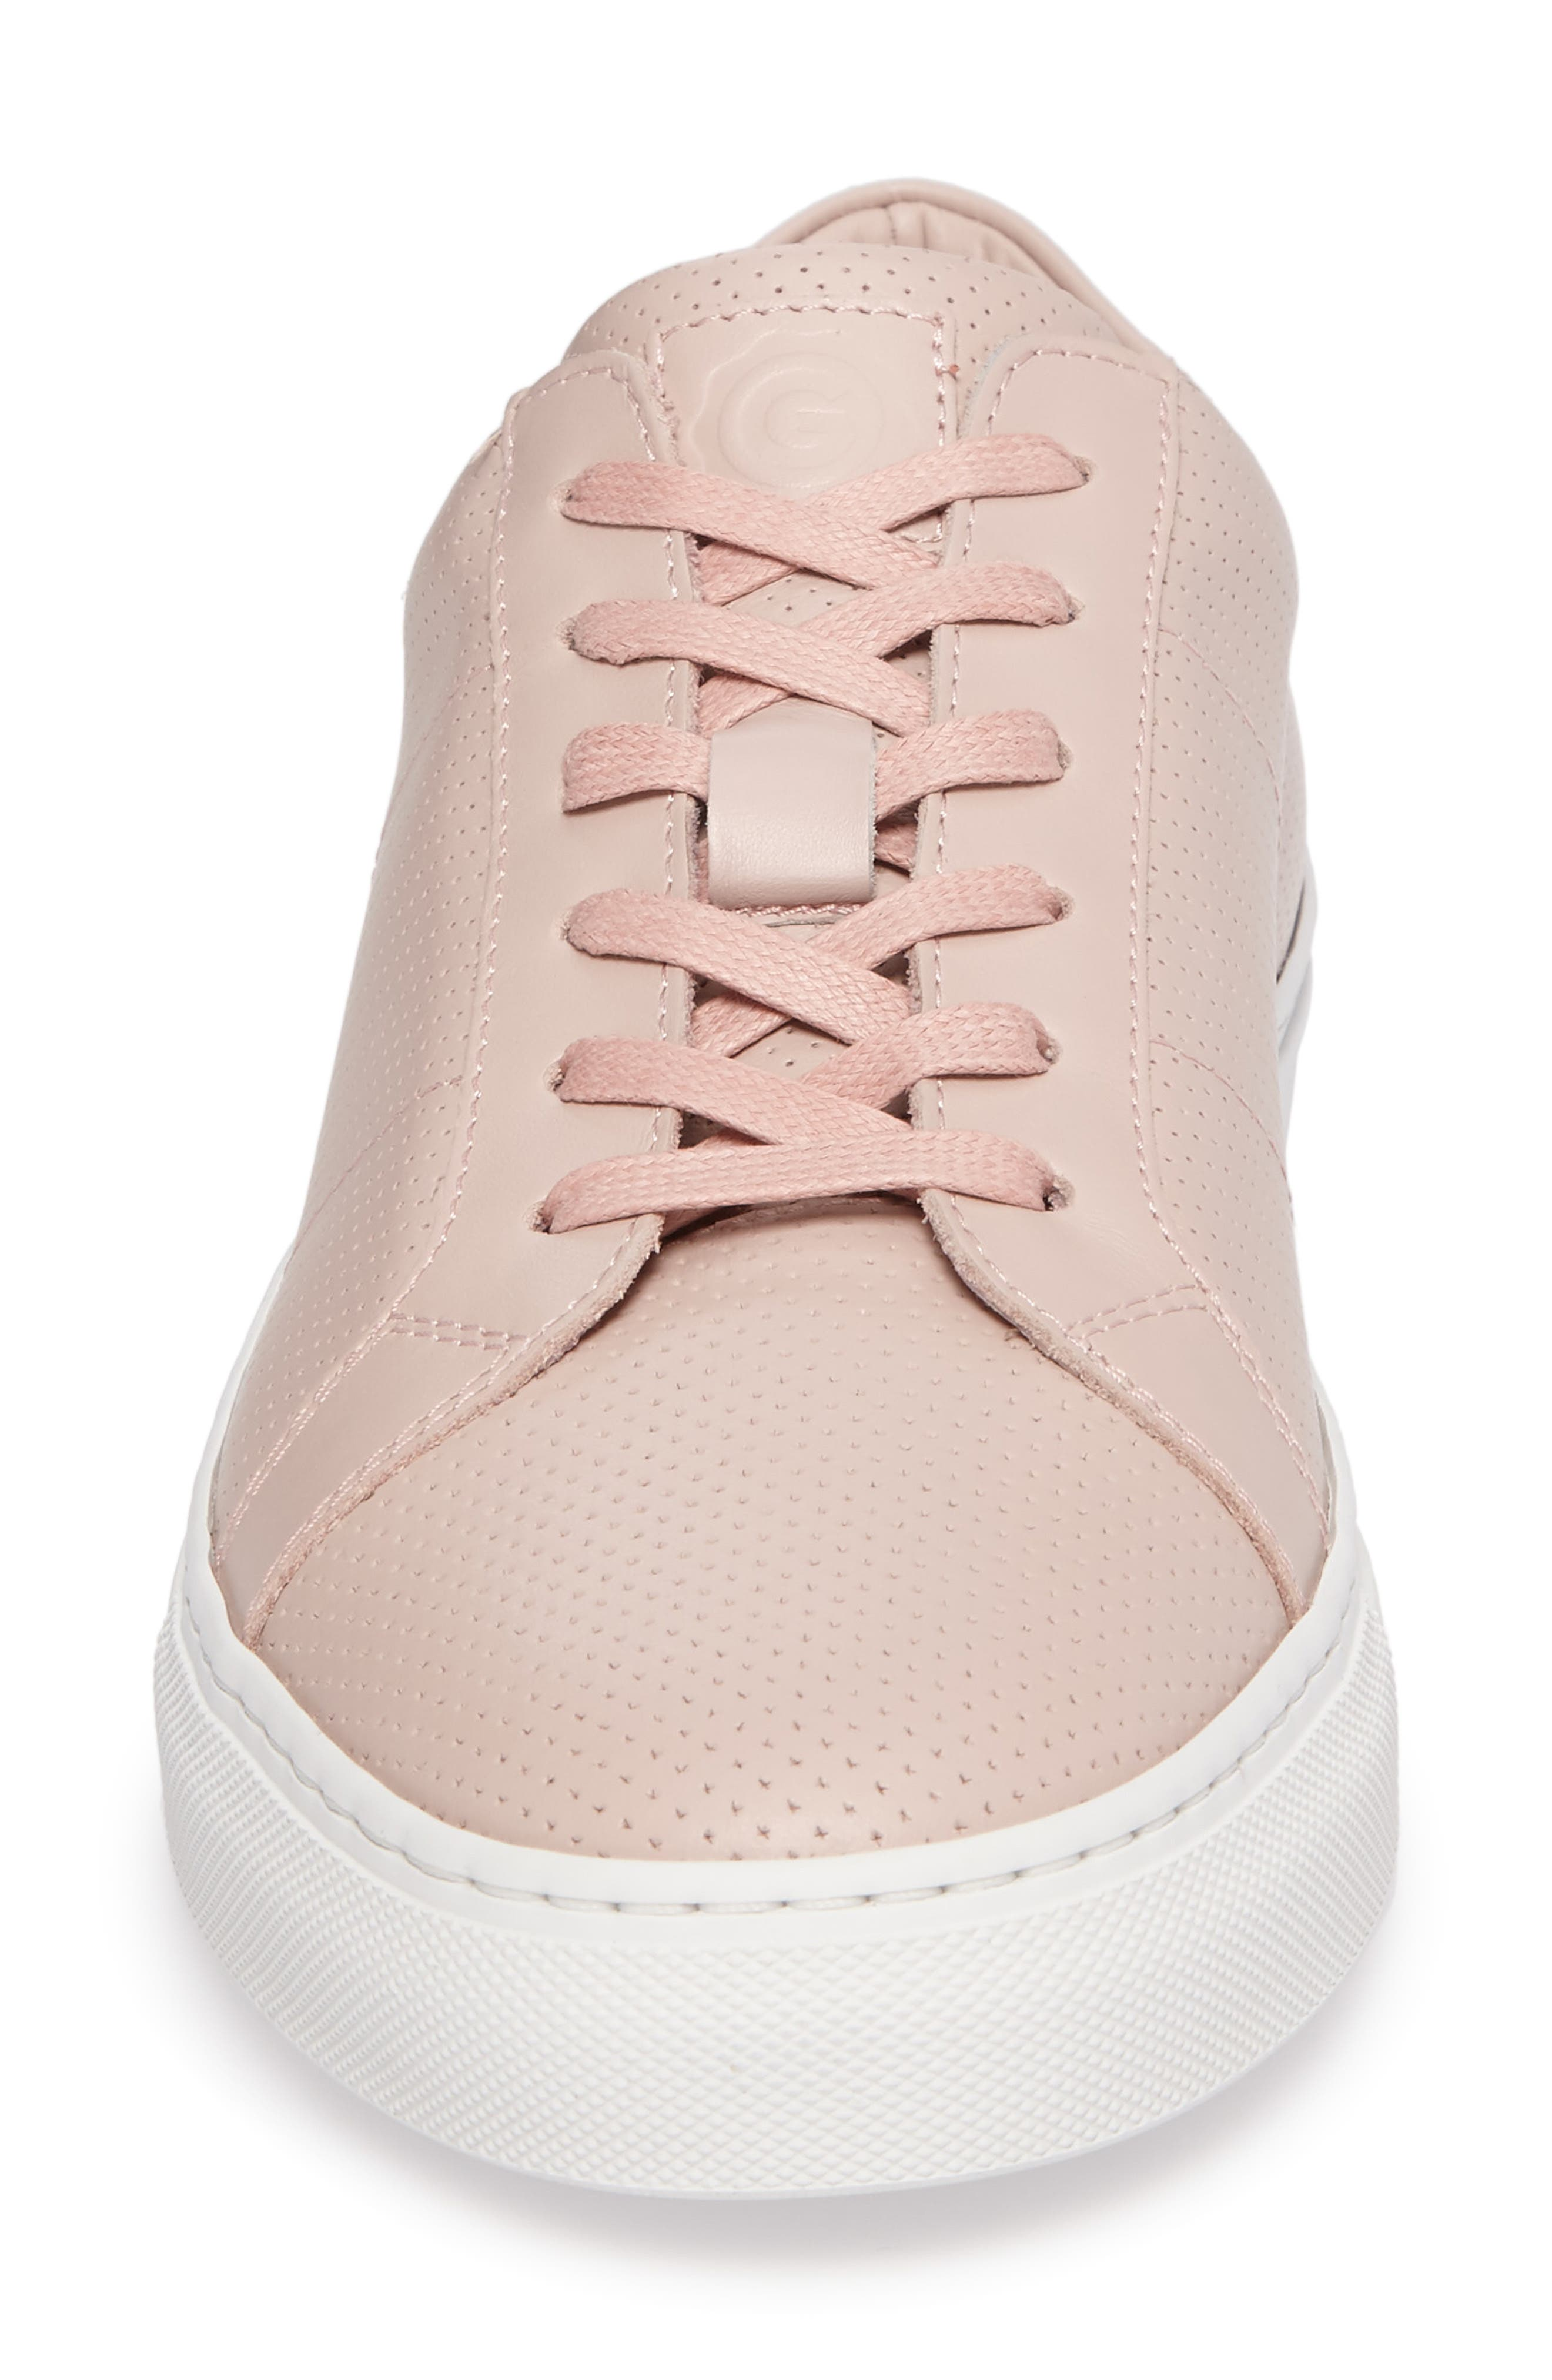 Royale Perforated Low Top Sneaker,                             Alternate thumbnail 4, color,                             BLUSH PERFORATED LEATHER